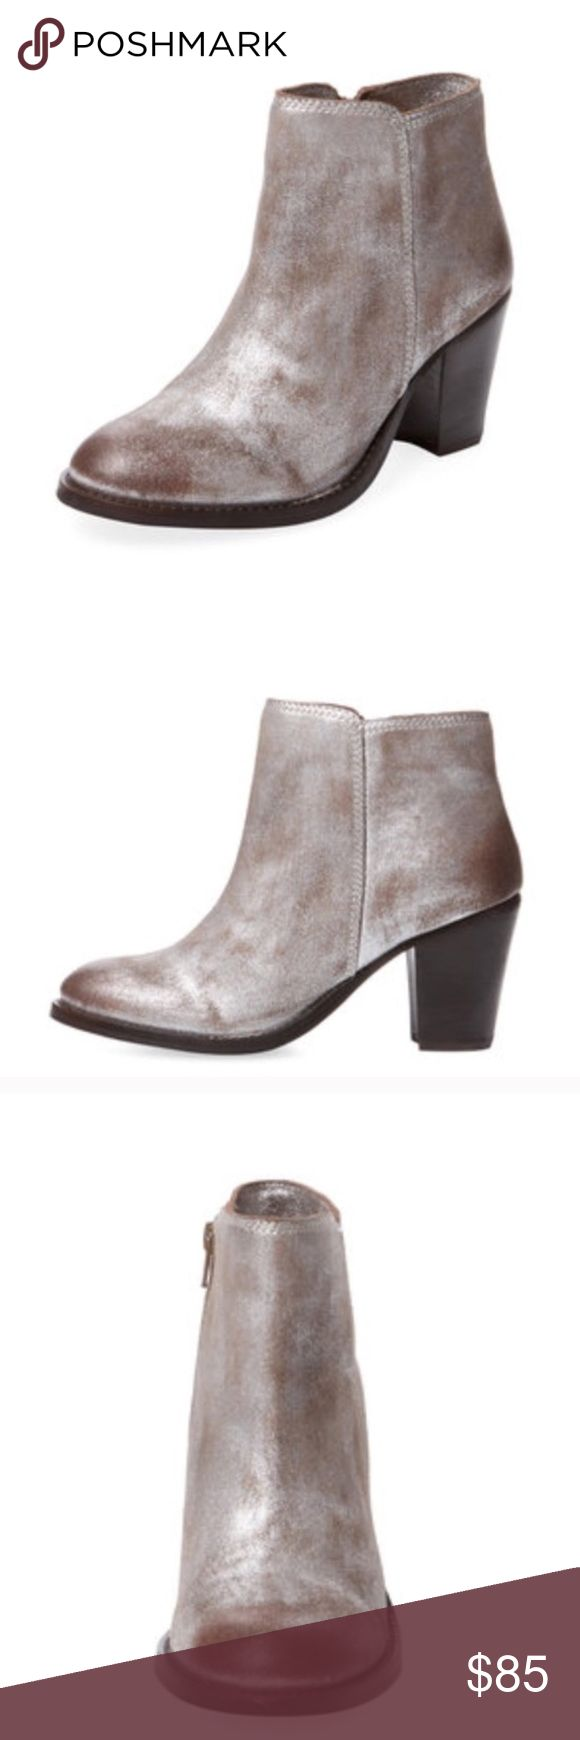 Seychelles Resolution Pewter Silver Ankle Boot In excellent condition! Pictures coming soon. They are prettier in person. Size 7.5 Seychelles Shoes Ankle Boots & Booties